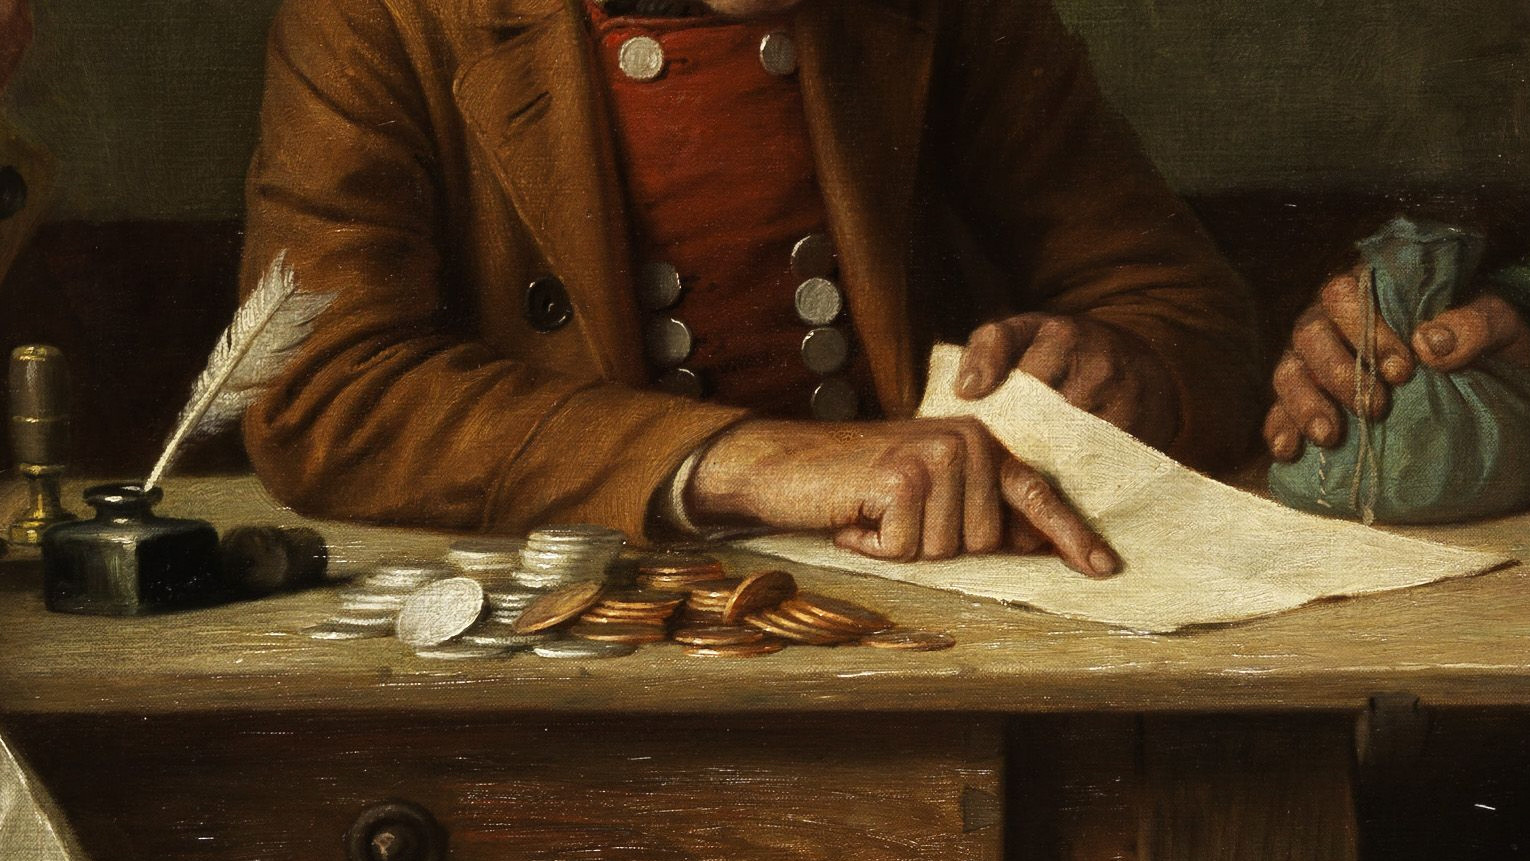 A painting of coins on a table by Josef Wagner-Höhenberg.